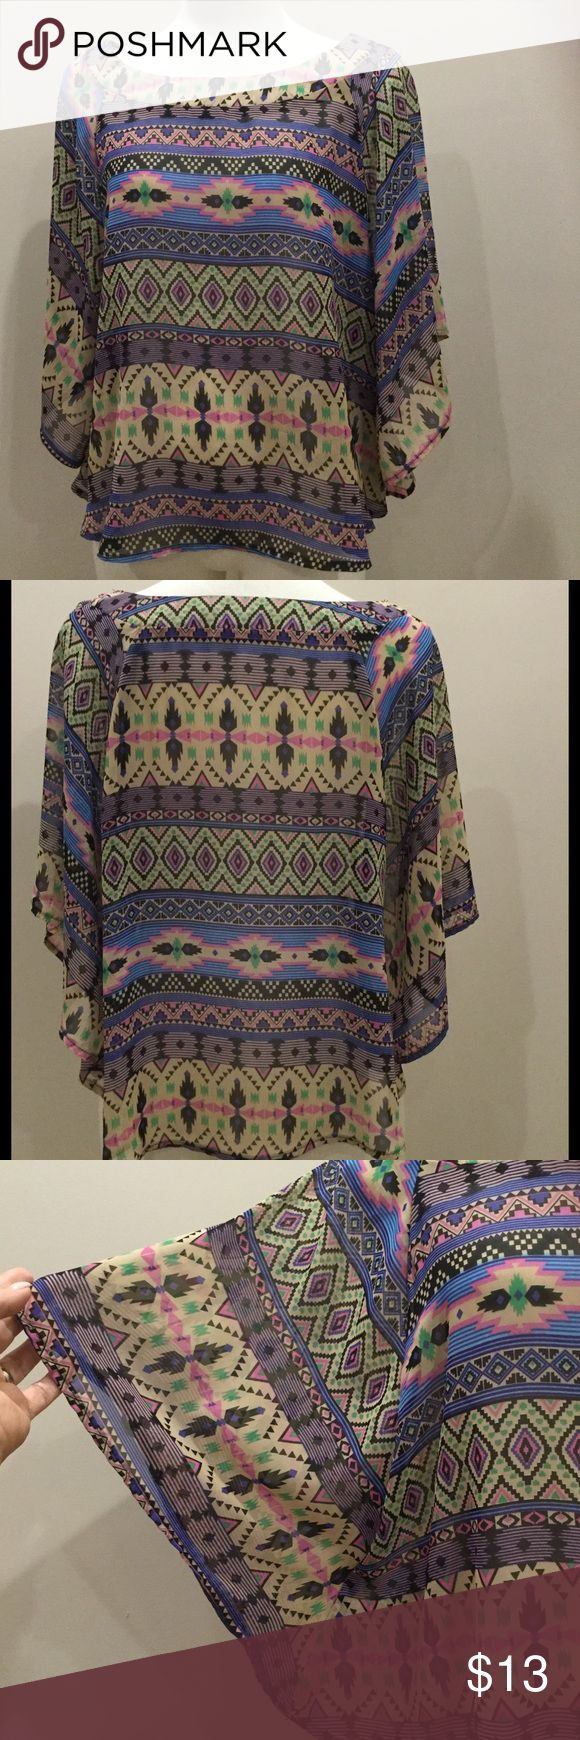 Charlotte Russe Aztec Print batwing top Charlotte Russe sheer Aztec Print batwing top. Light and flowey Size XL. This item is a REPOSH. code T3 Charlotte Russe Tops Blouses